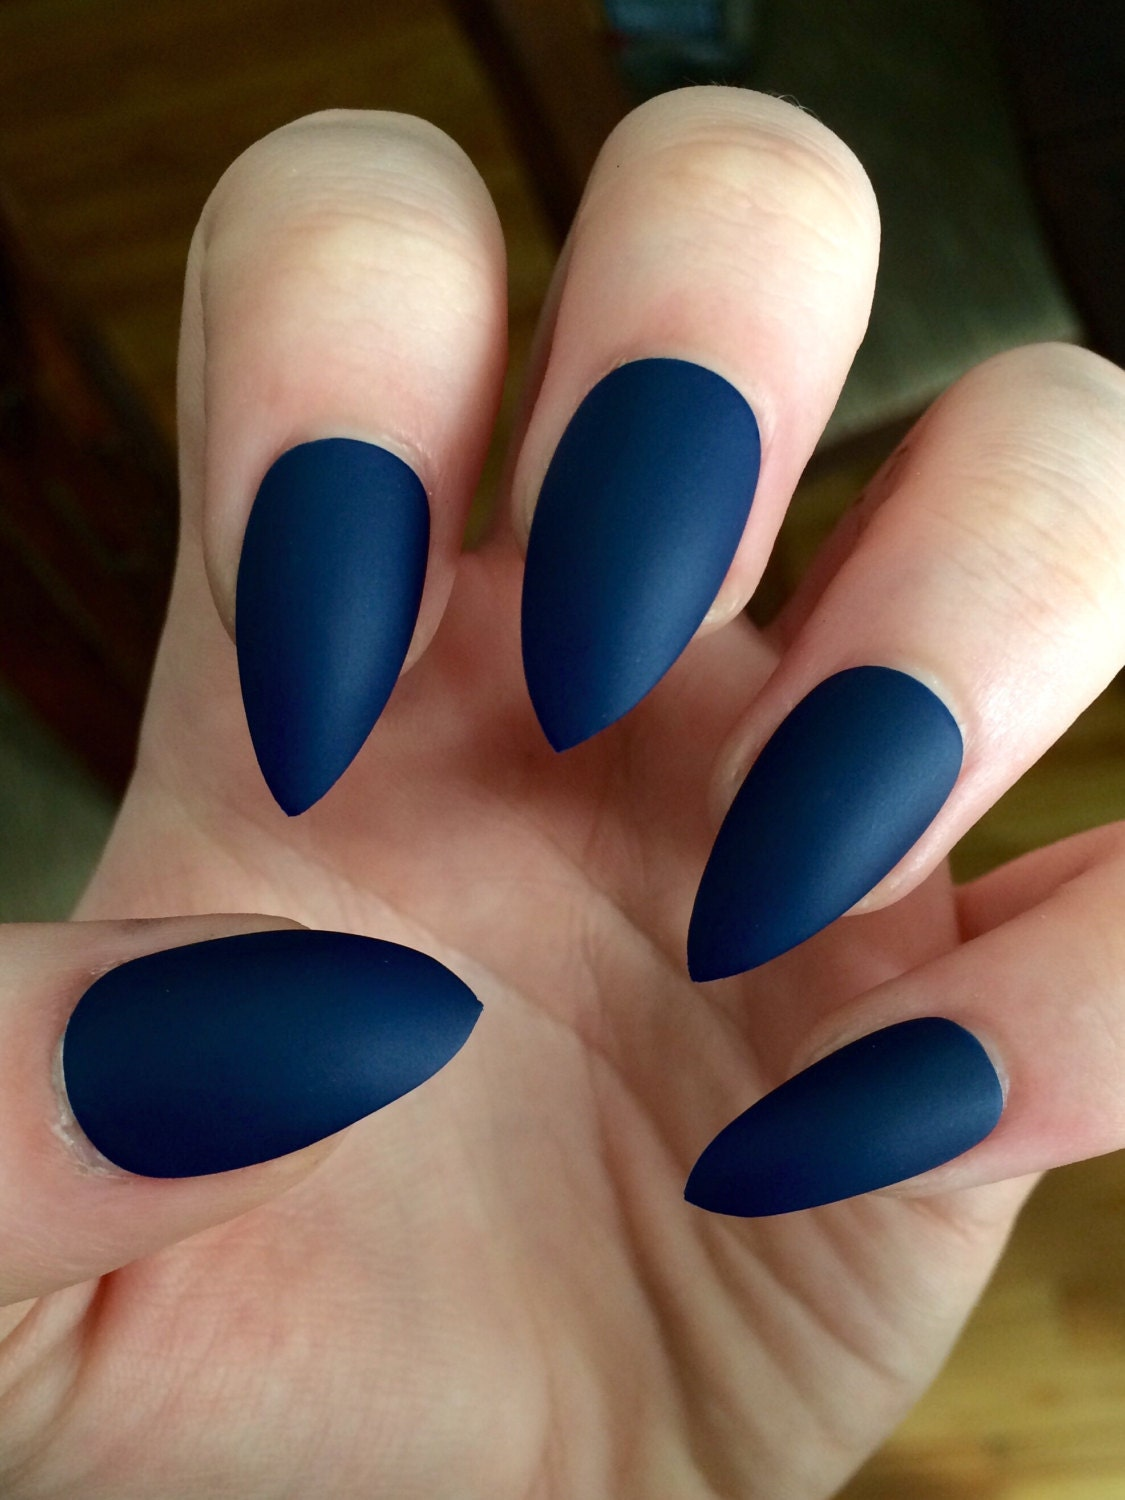 matte nails, stiletto nails, navy blue, fake nails from